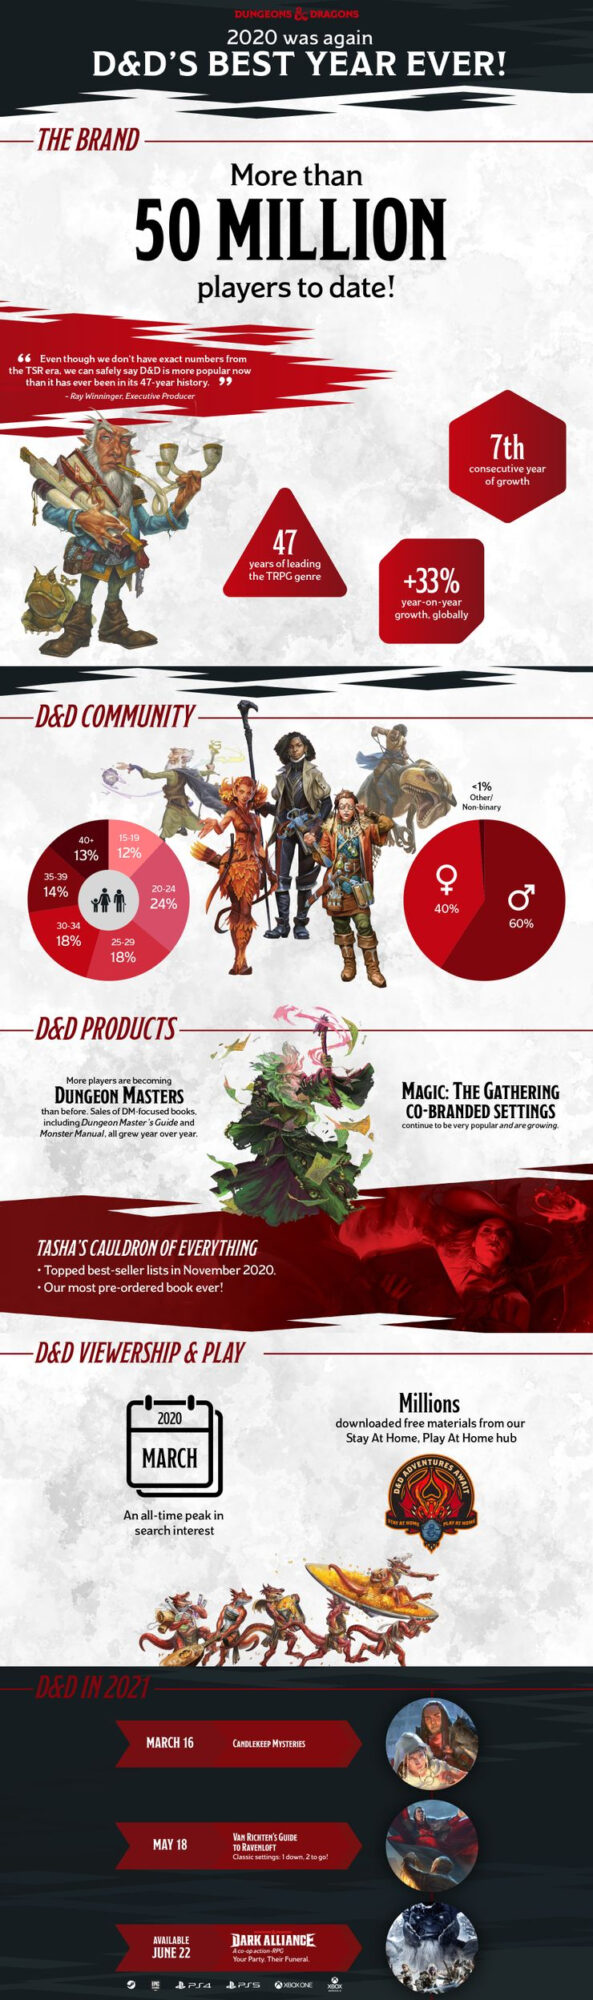 dungeons & dragons infographic